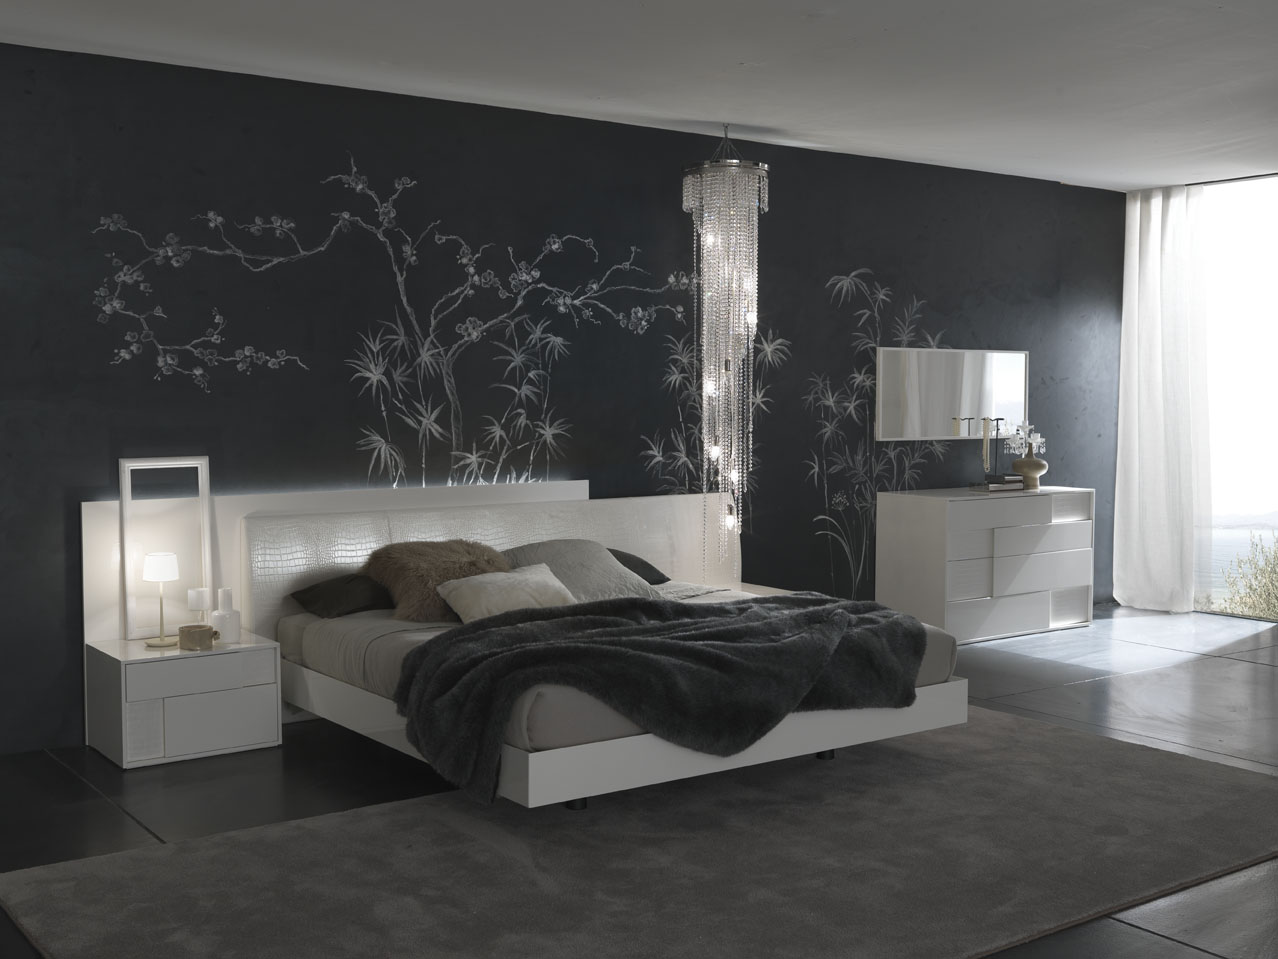 Bedroom decorating ideas from evinco vancouver wa wallpaper   HGTV 1278x959